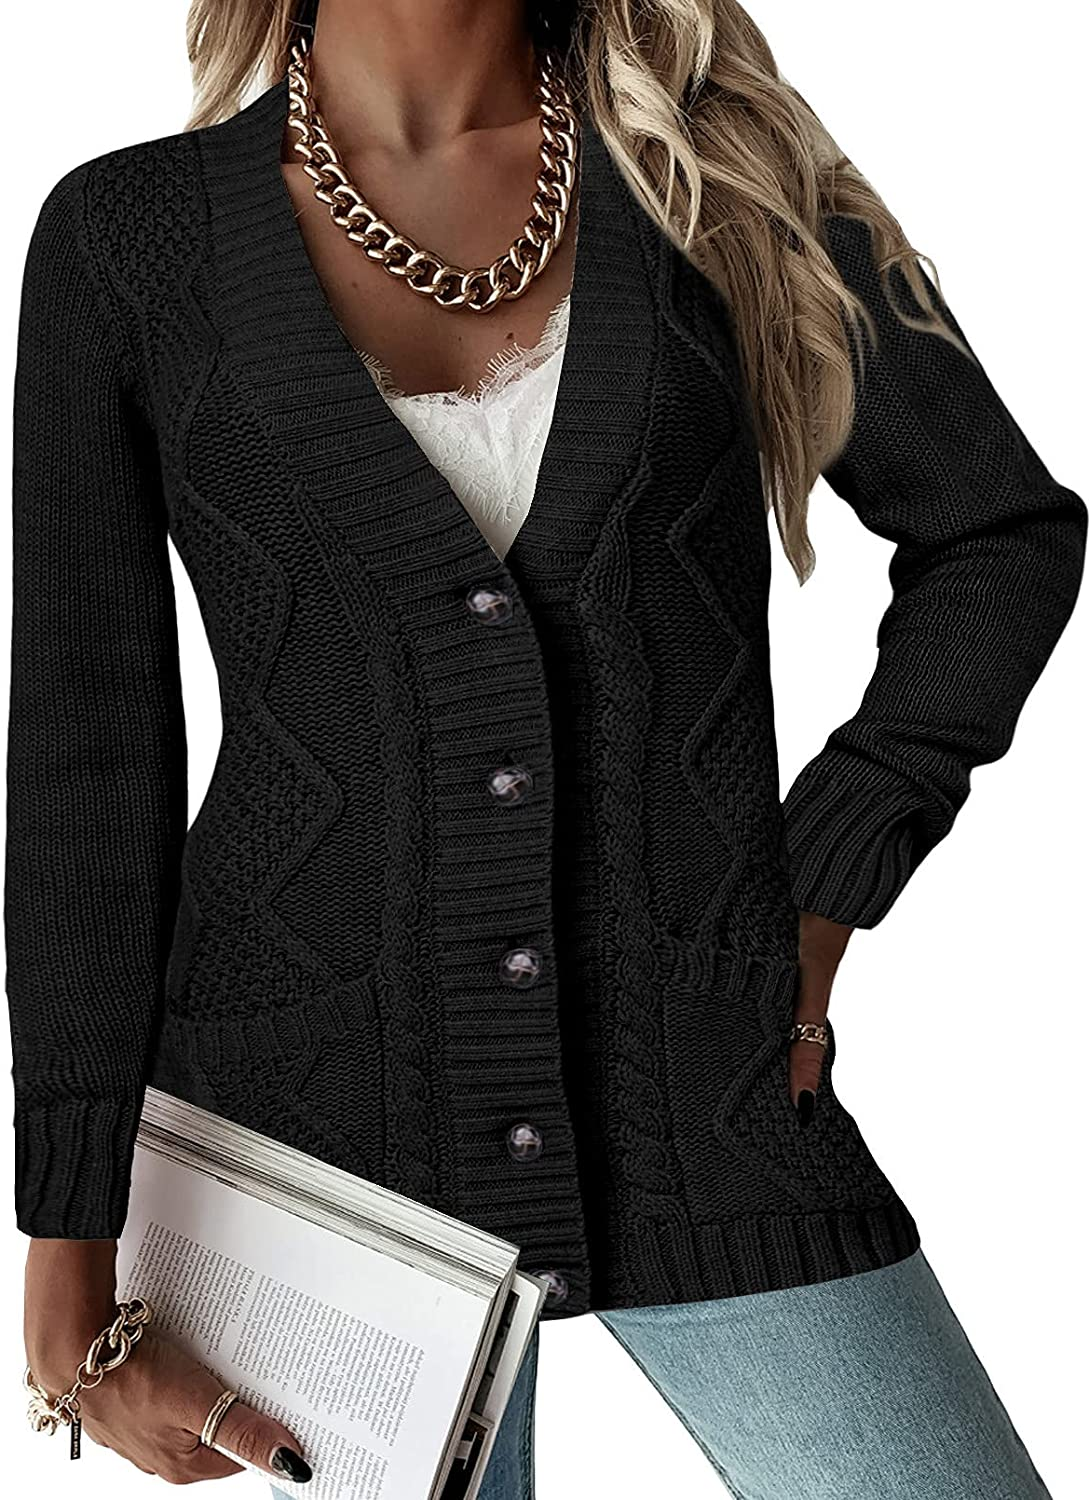 Astylish Women Open Front Cardigan Knit Sweater Outerwear Coat with Button